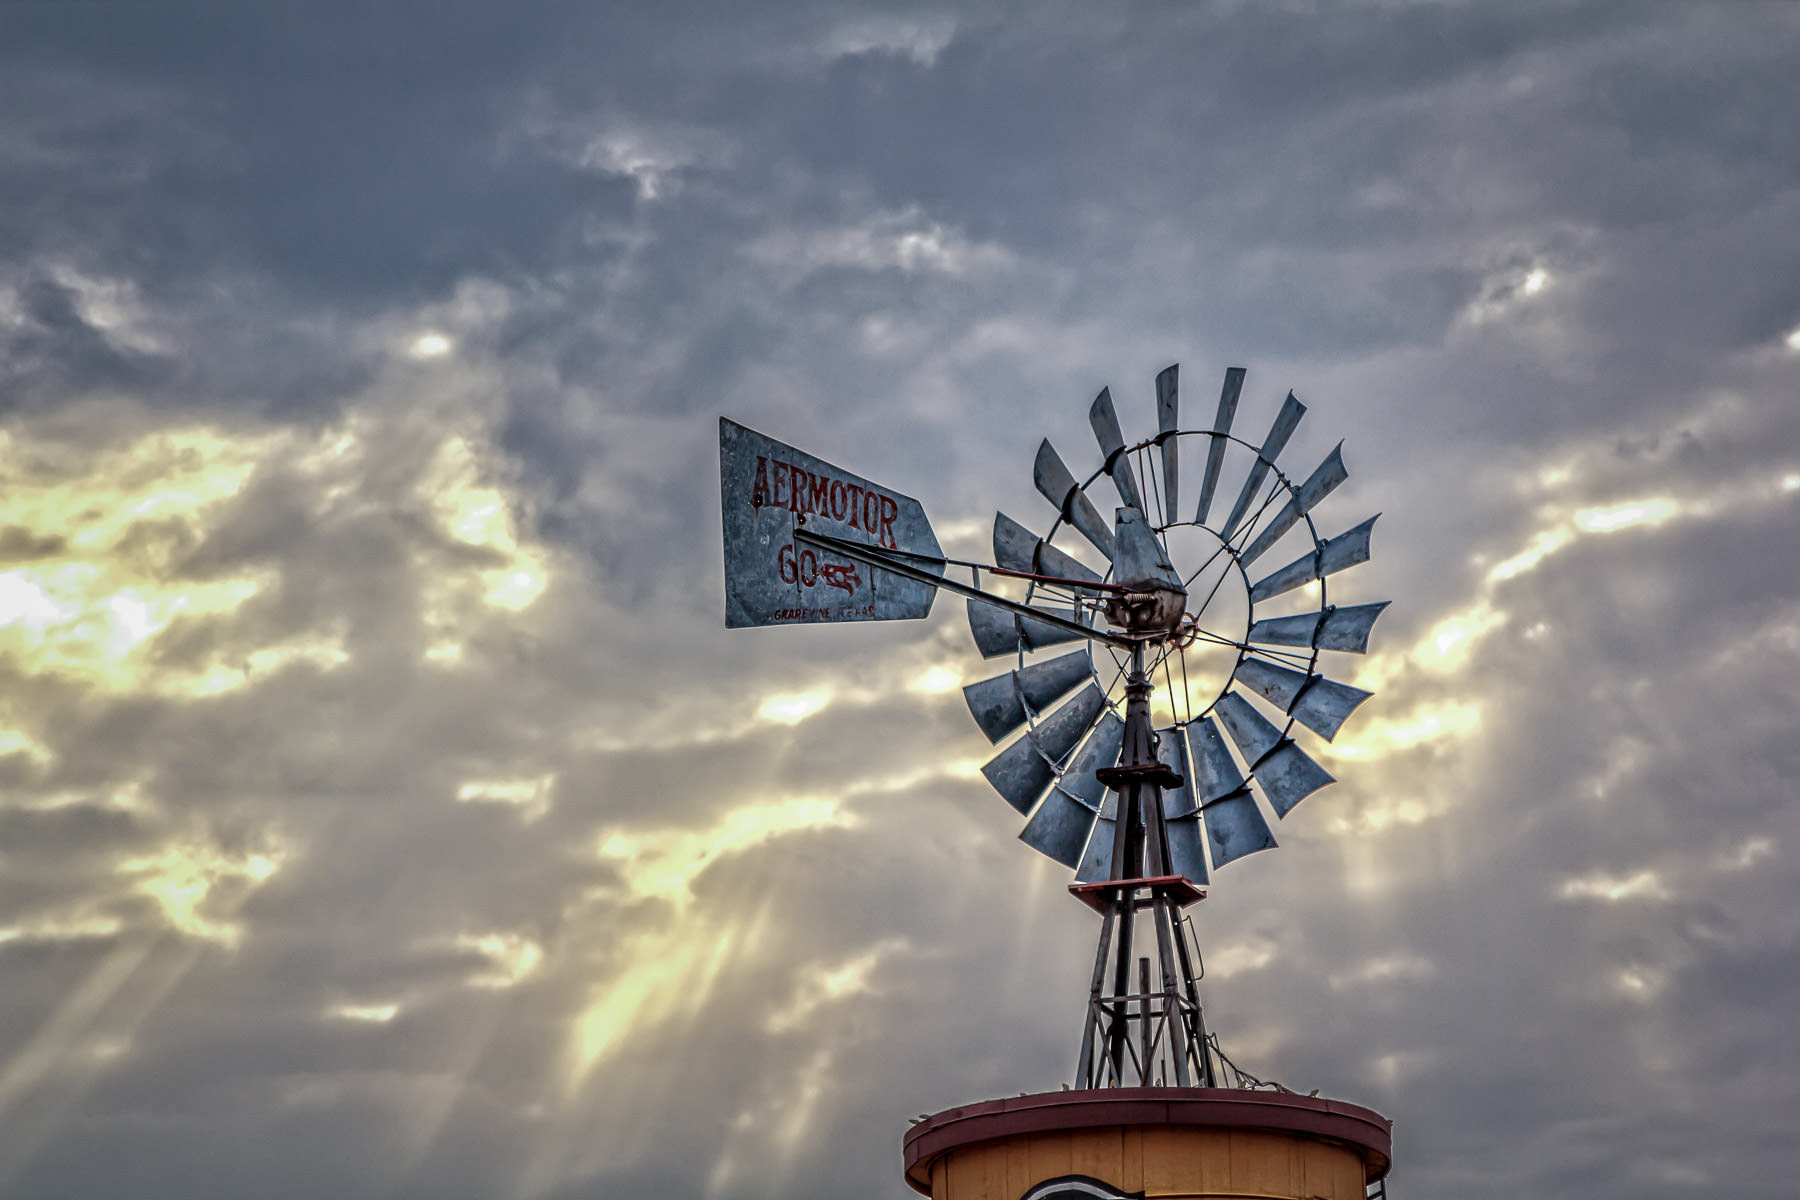 Sun rays pierce the clouds and illuminate a windmill in Downtown Grapevine, Texas.